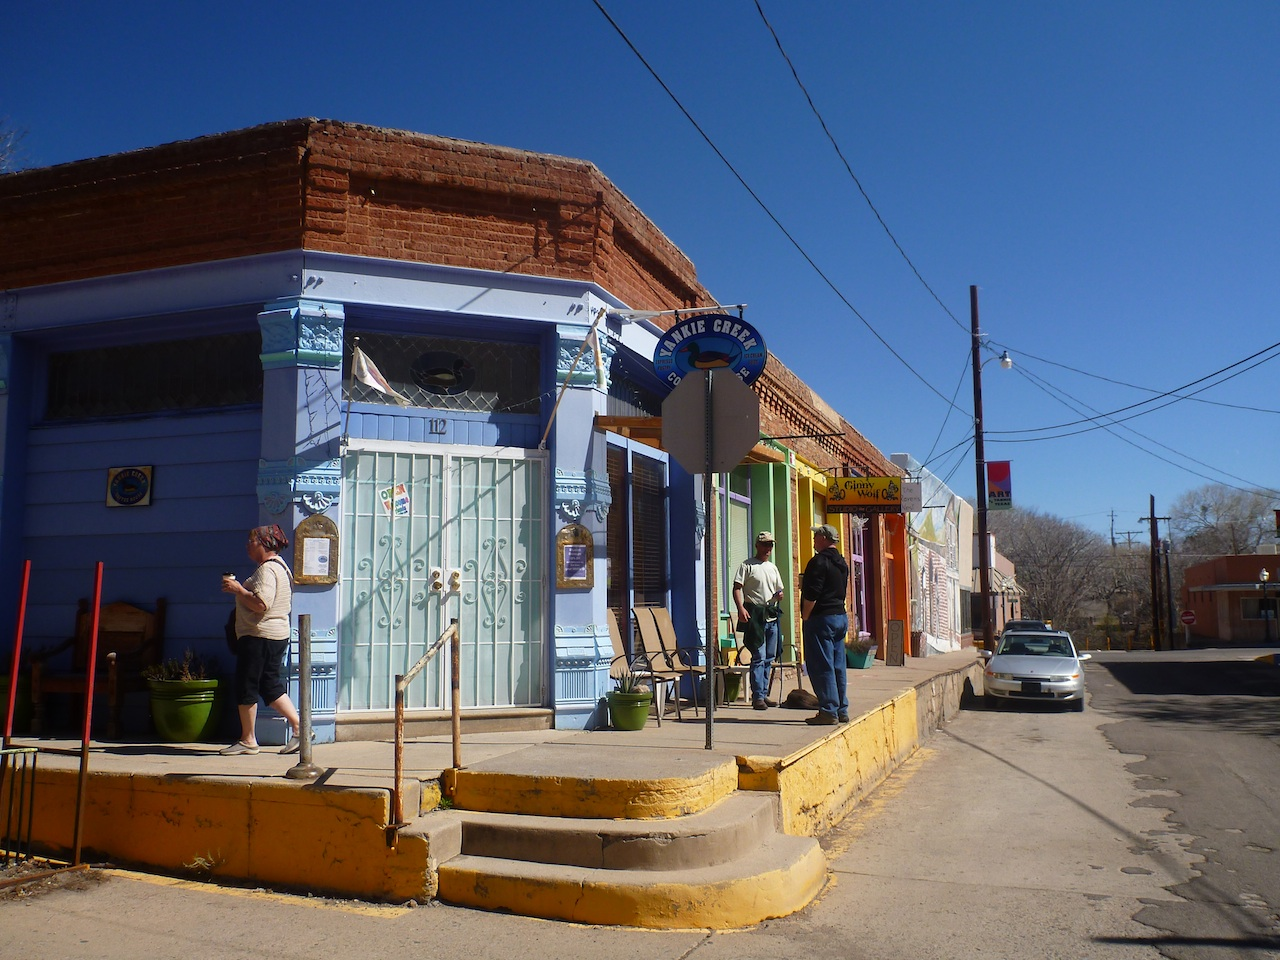 A Coffee Shop On The Corner.  Note The High Sidewalks To Accommodate The Water Flow.